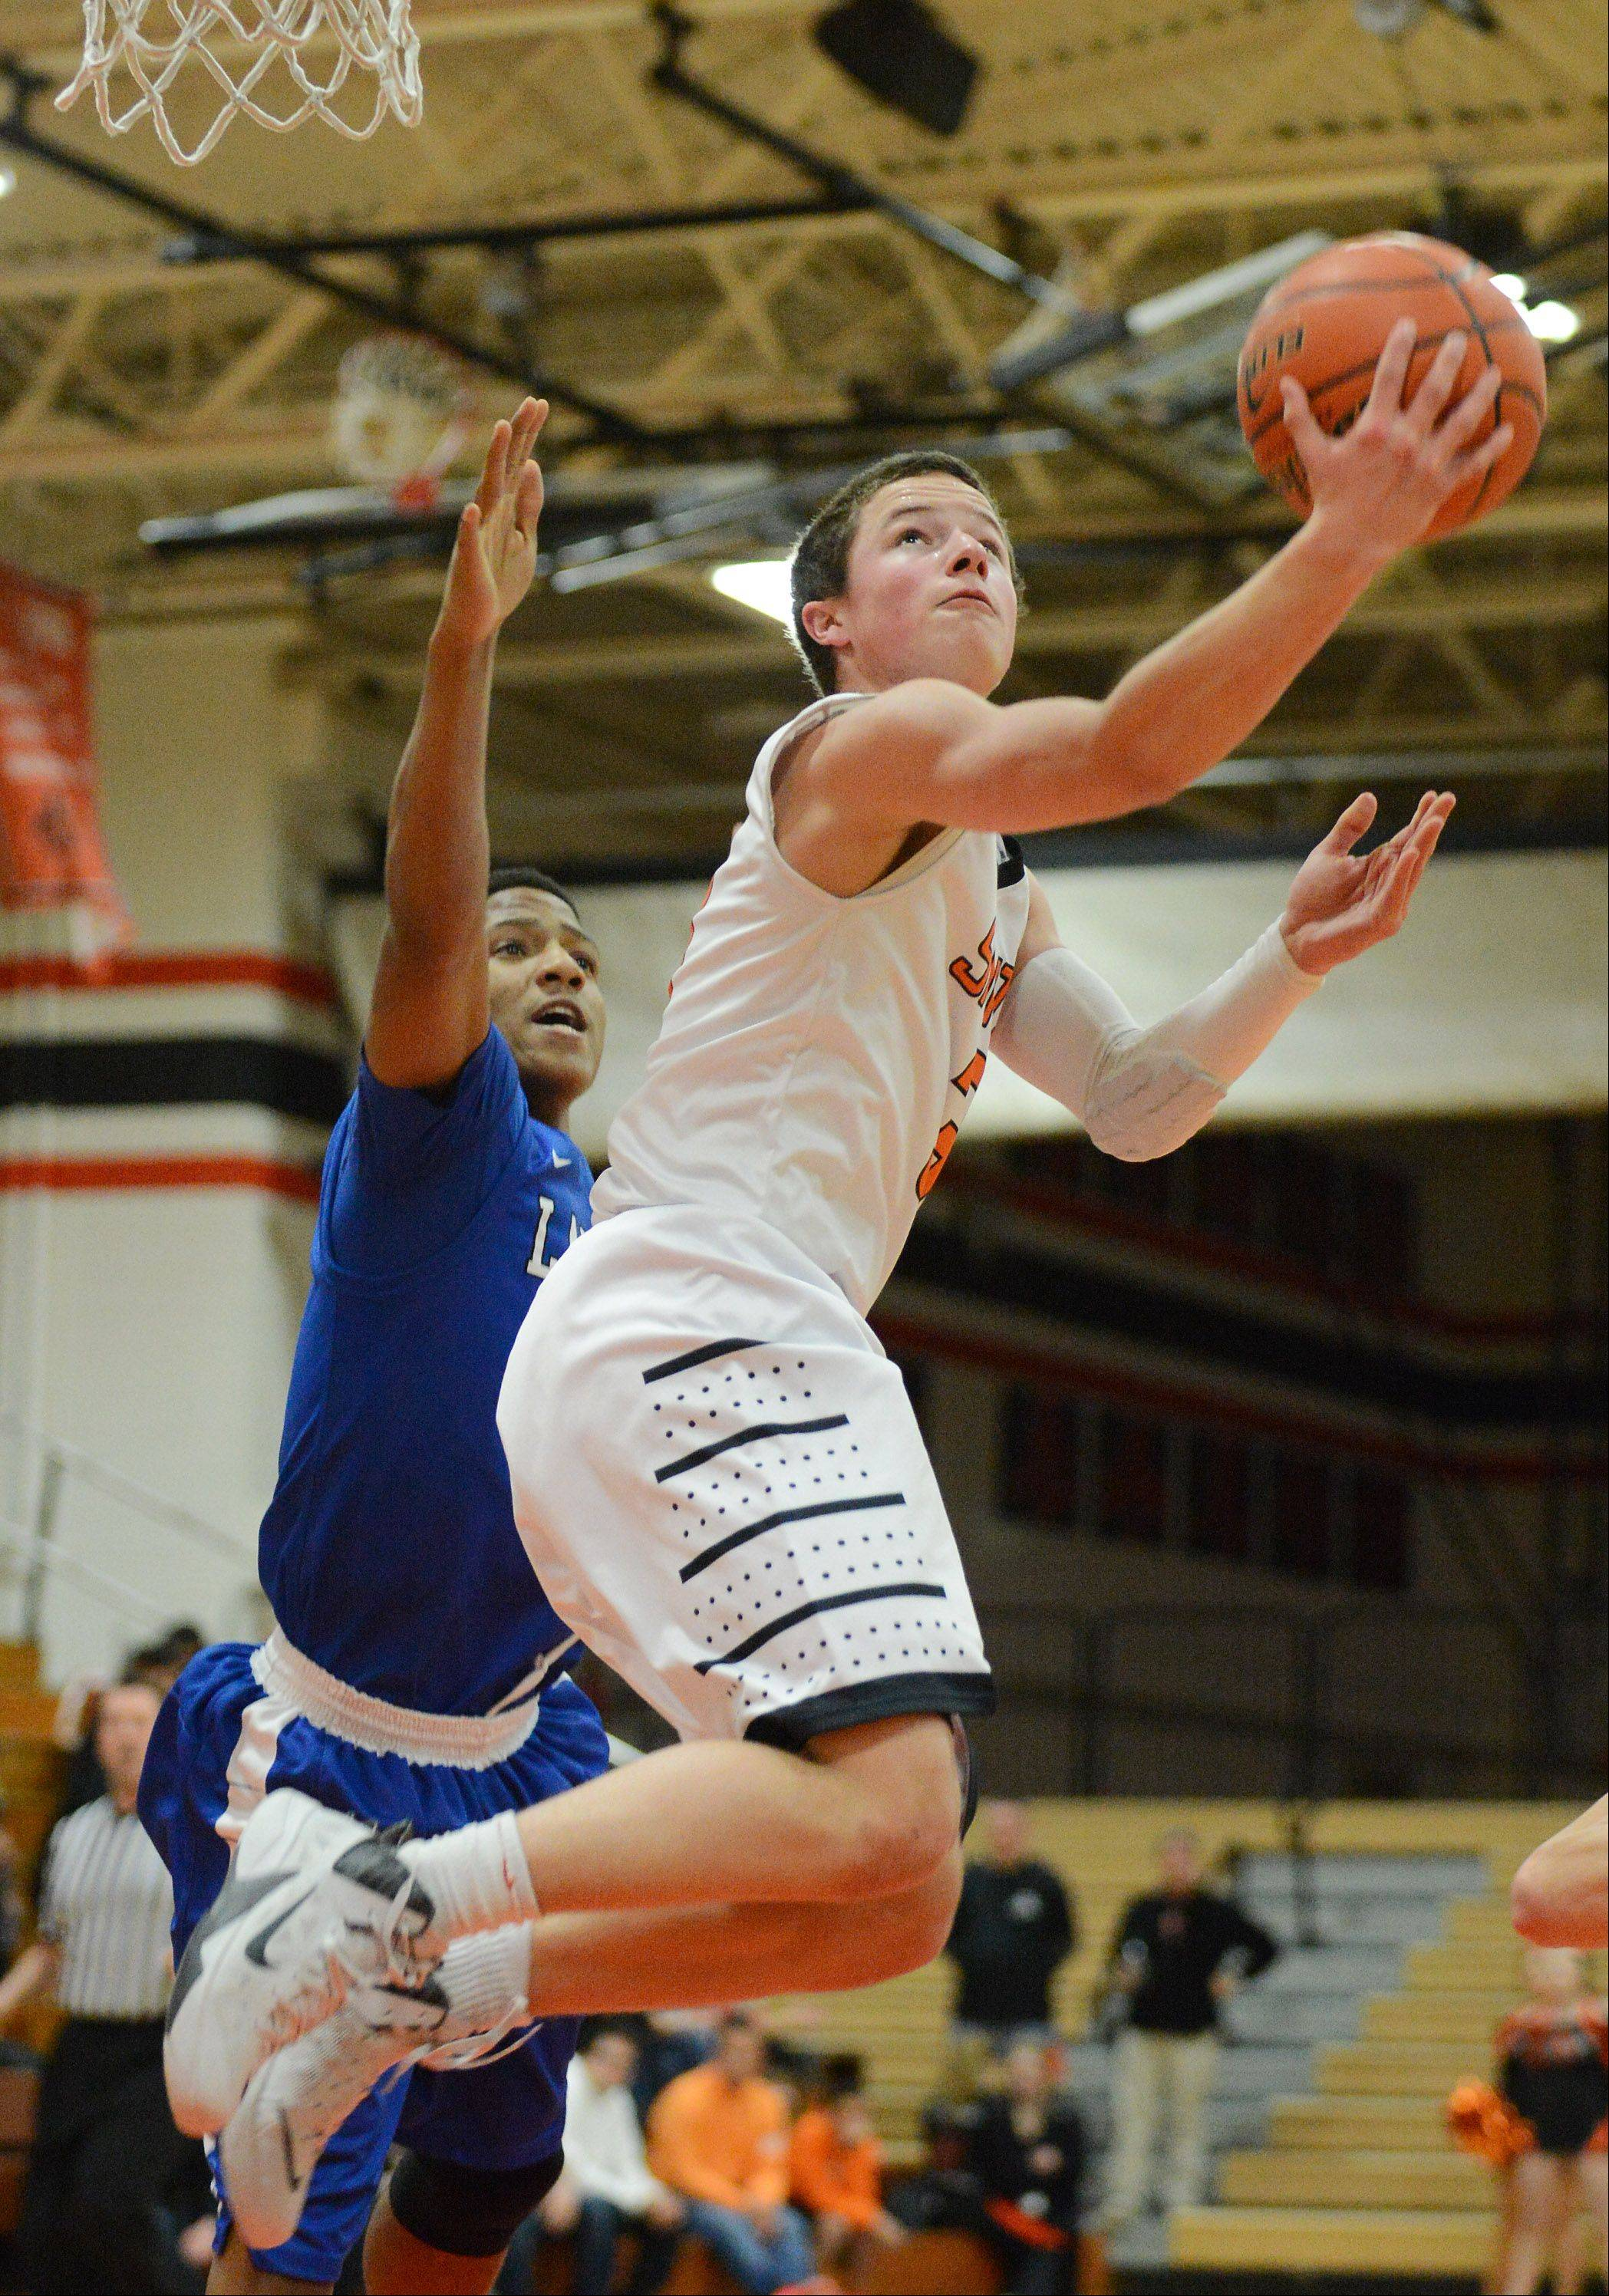 St. Charles East's Cole Gentry (3) goes up for a reverse layup against Larkin during Thursday's game in St. Charles.